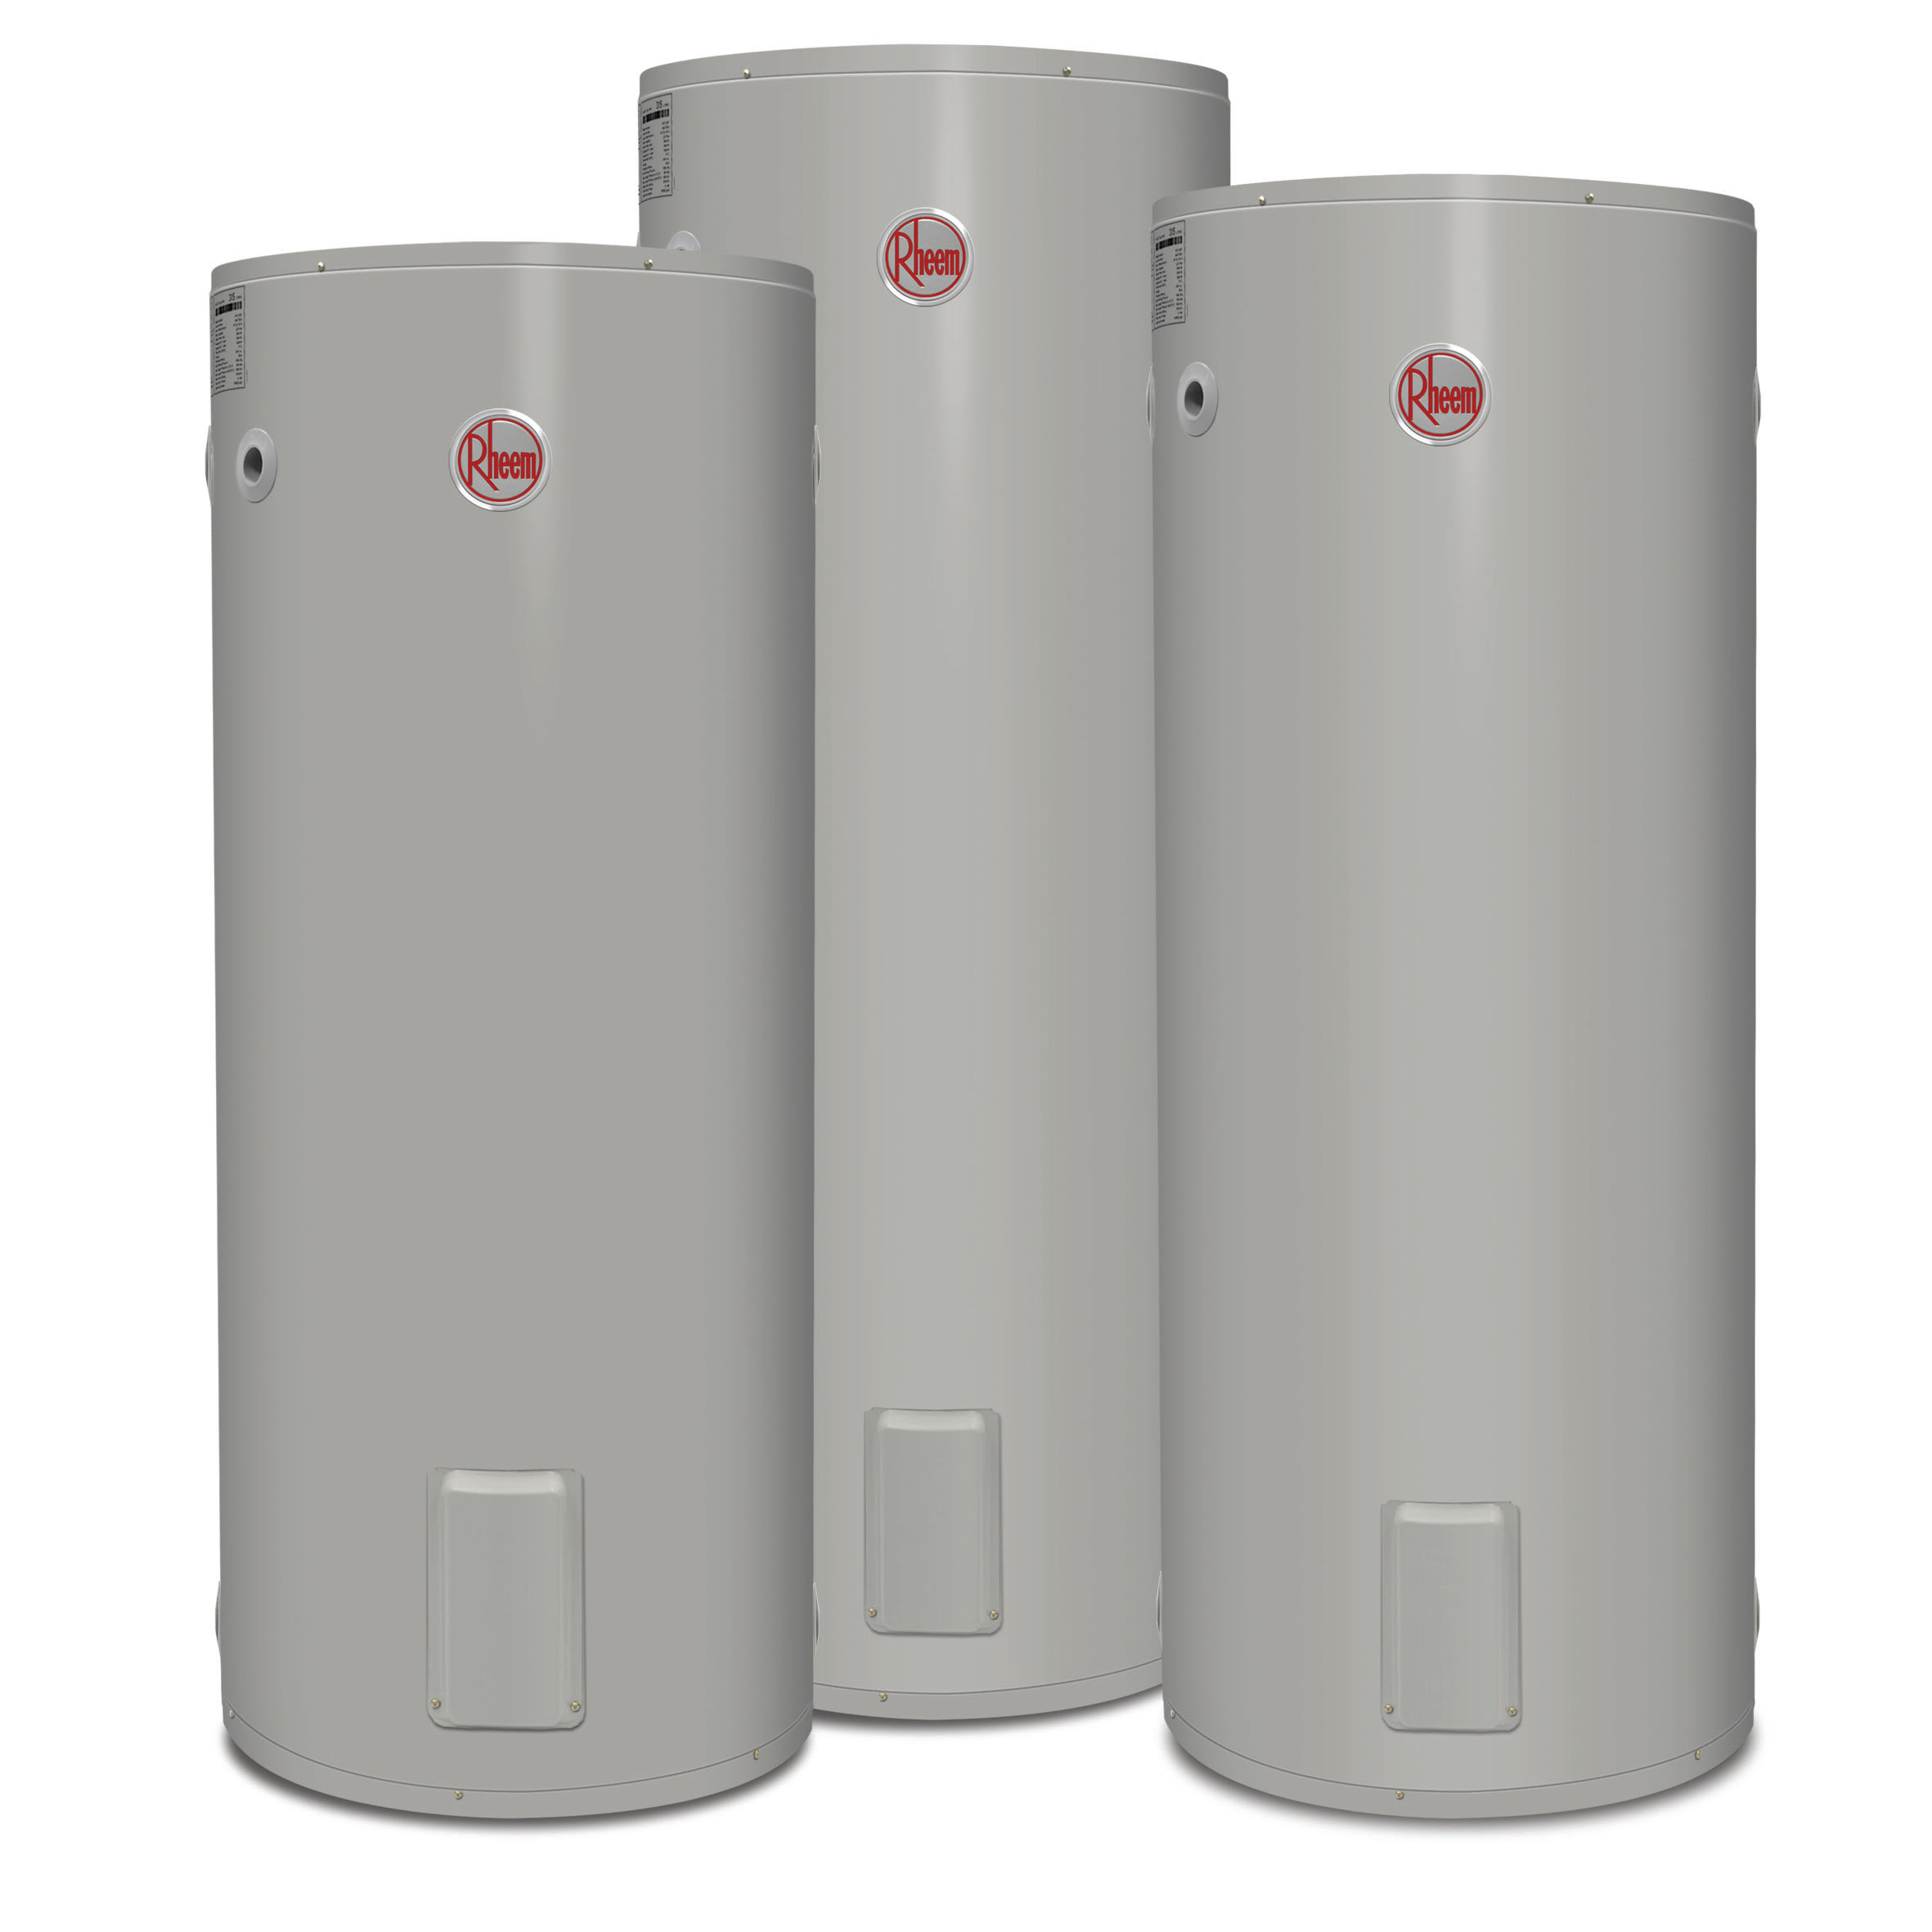 Rheem Hot Water Heaters >> Rheem Electric Water Heaters | Authorised Agents